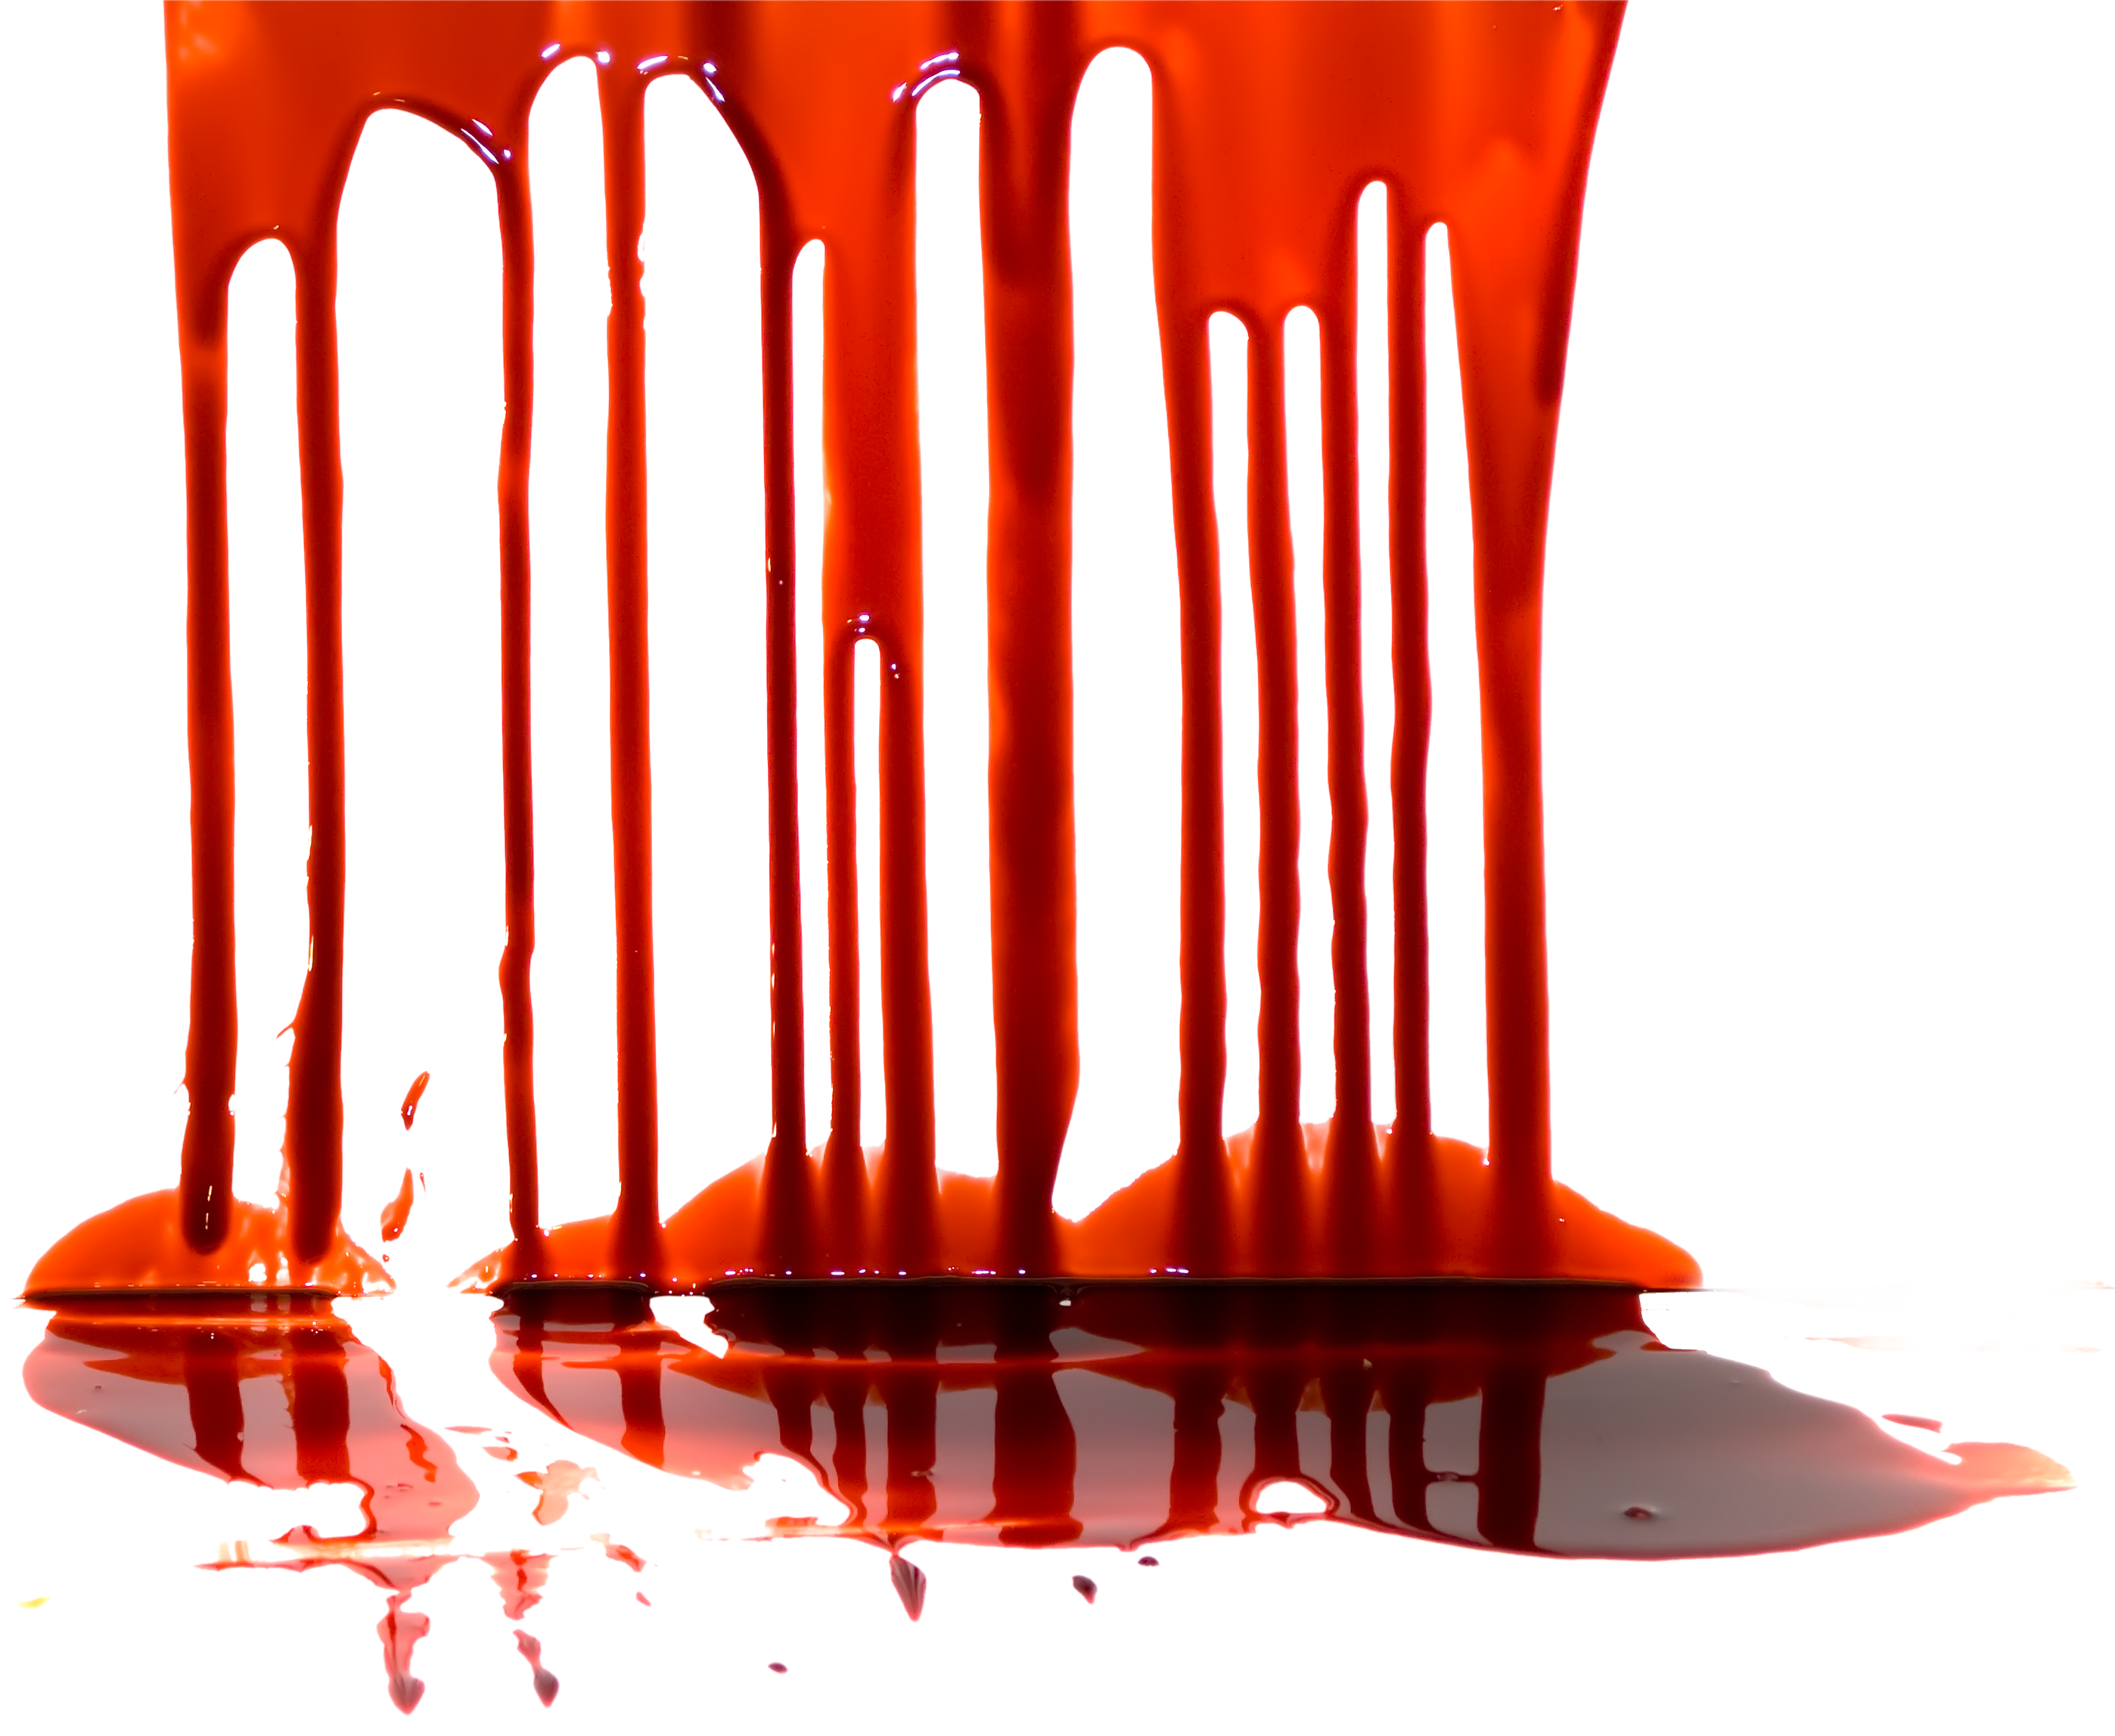 Now you can download Blood Transparent PNG Image